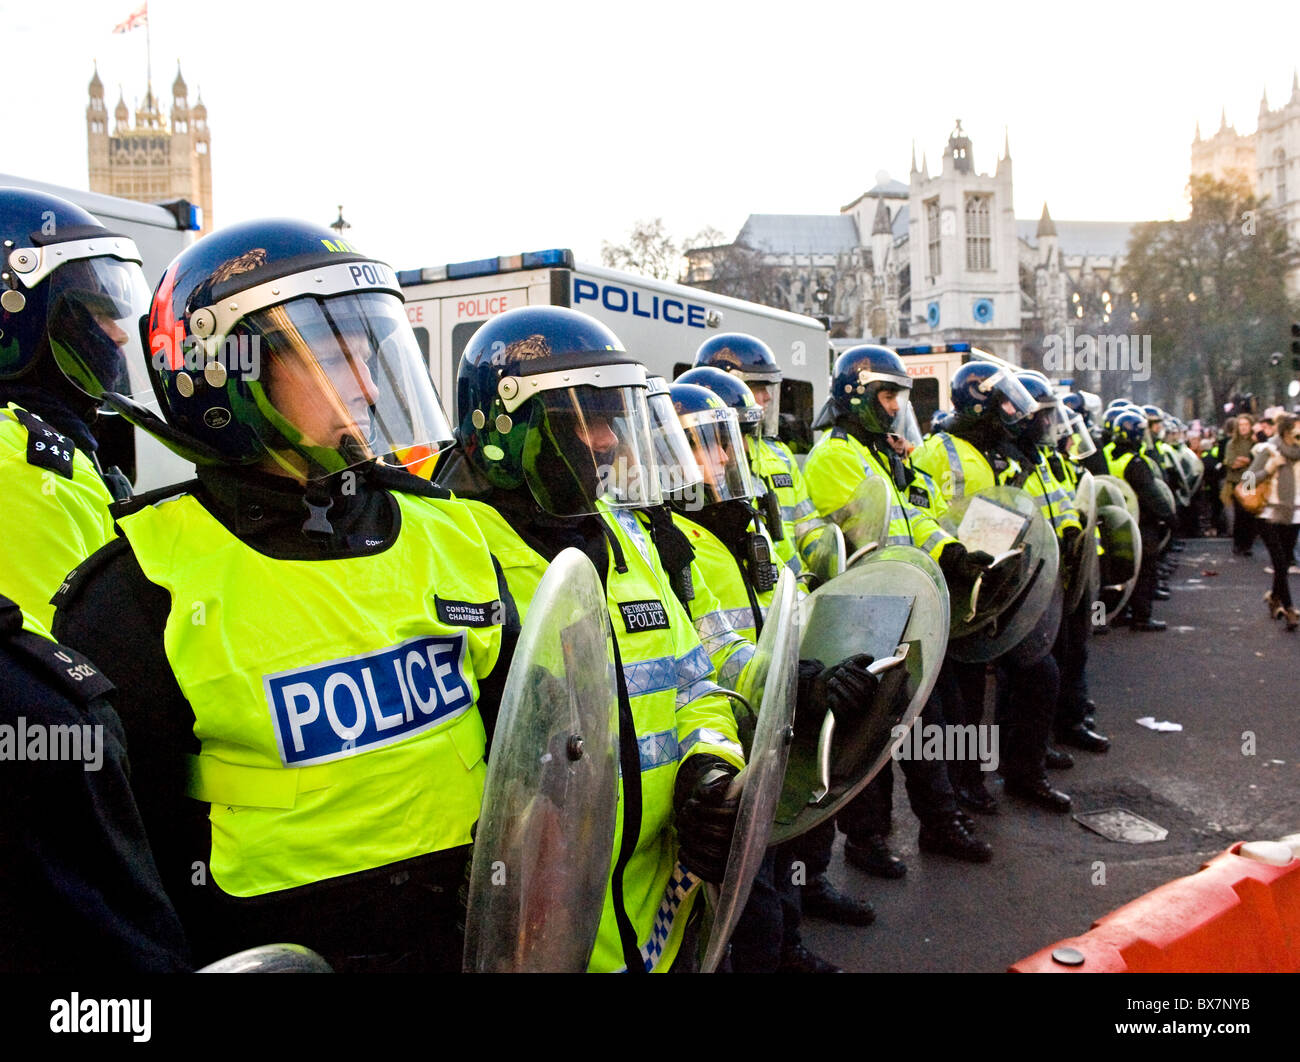 Metropolitan Police officers forming a cordon at a student demonstration in London. - Stock Image